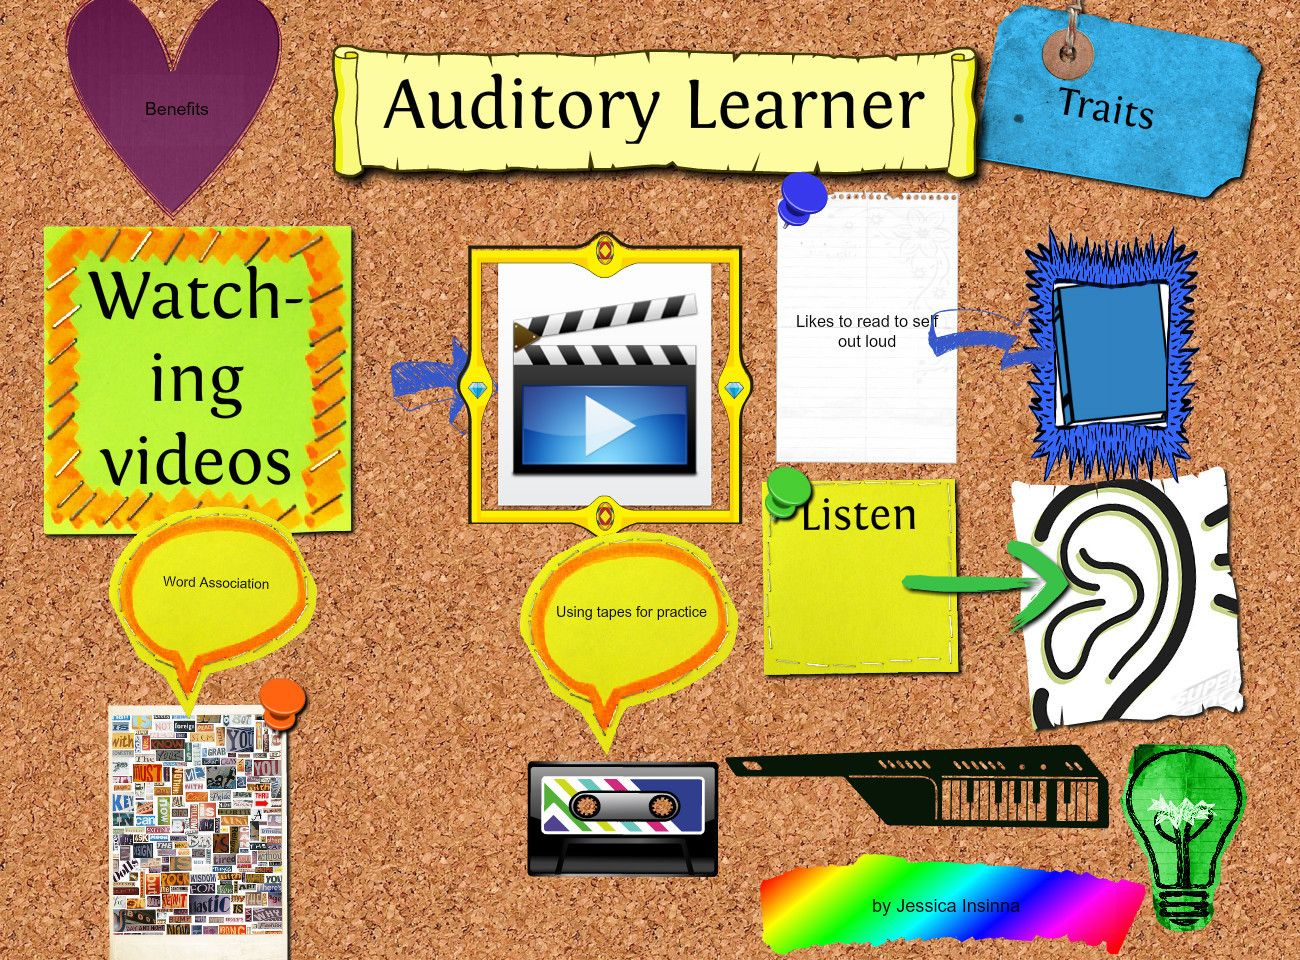 essay about auditory learners Auditory, visual, and kinesthetic learning the principal approach to mull over learning is to consider it as a system that combines basic elements explicitly visual (seeing), doing (kinesthetic), and listening (auditory.